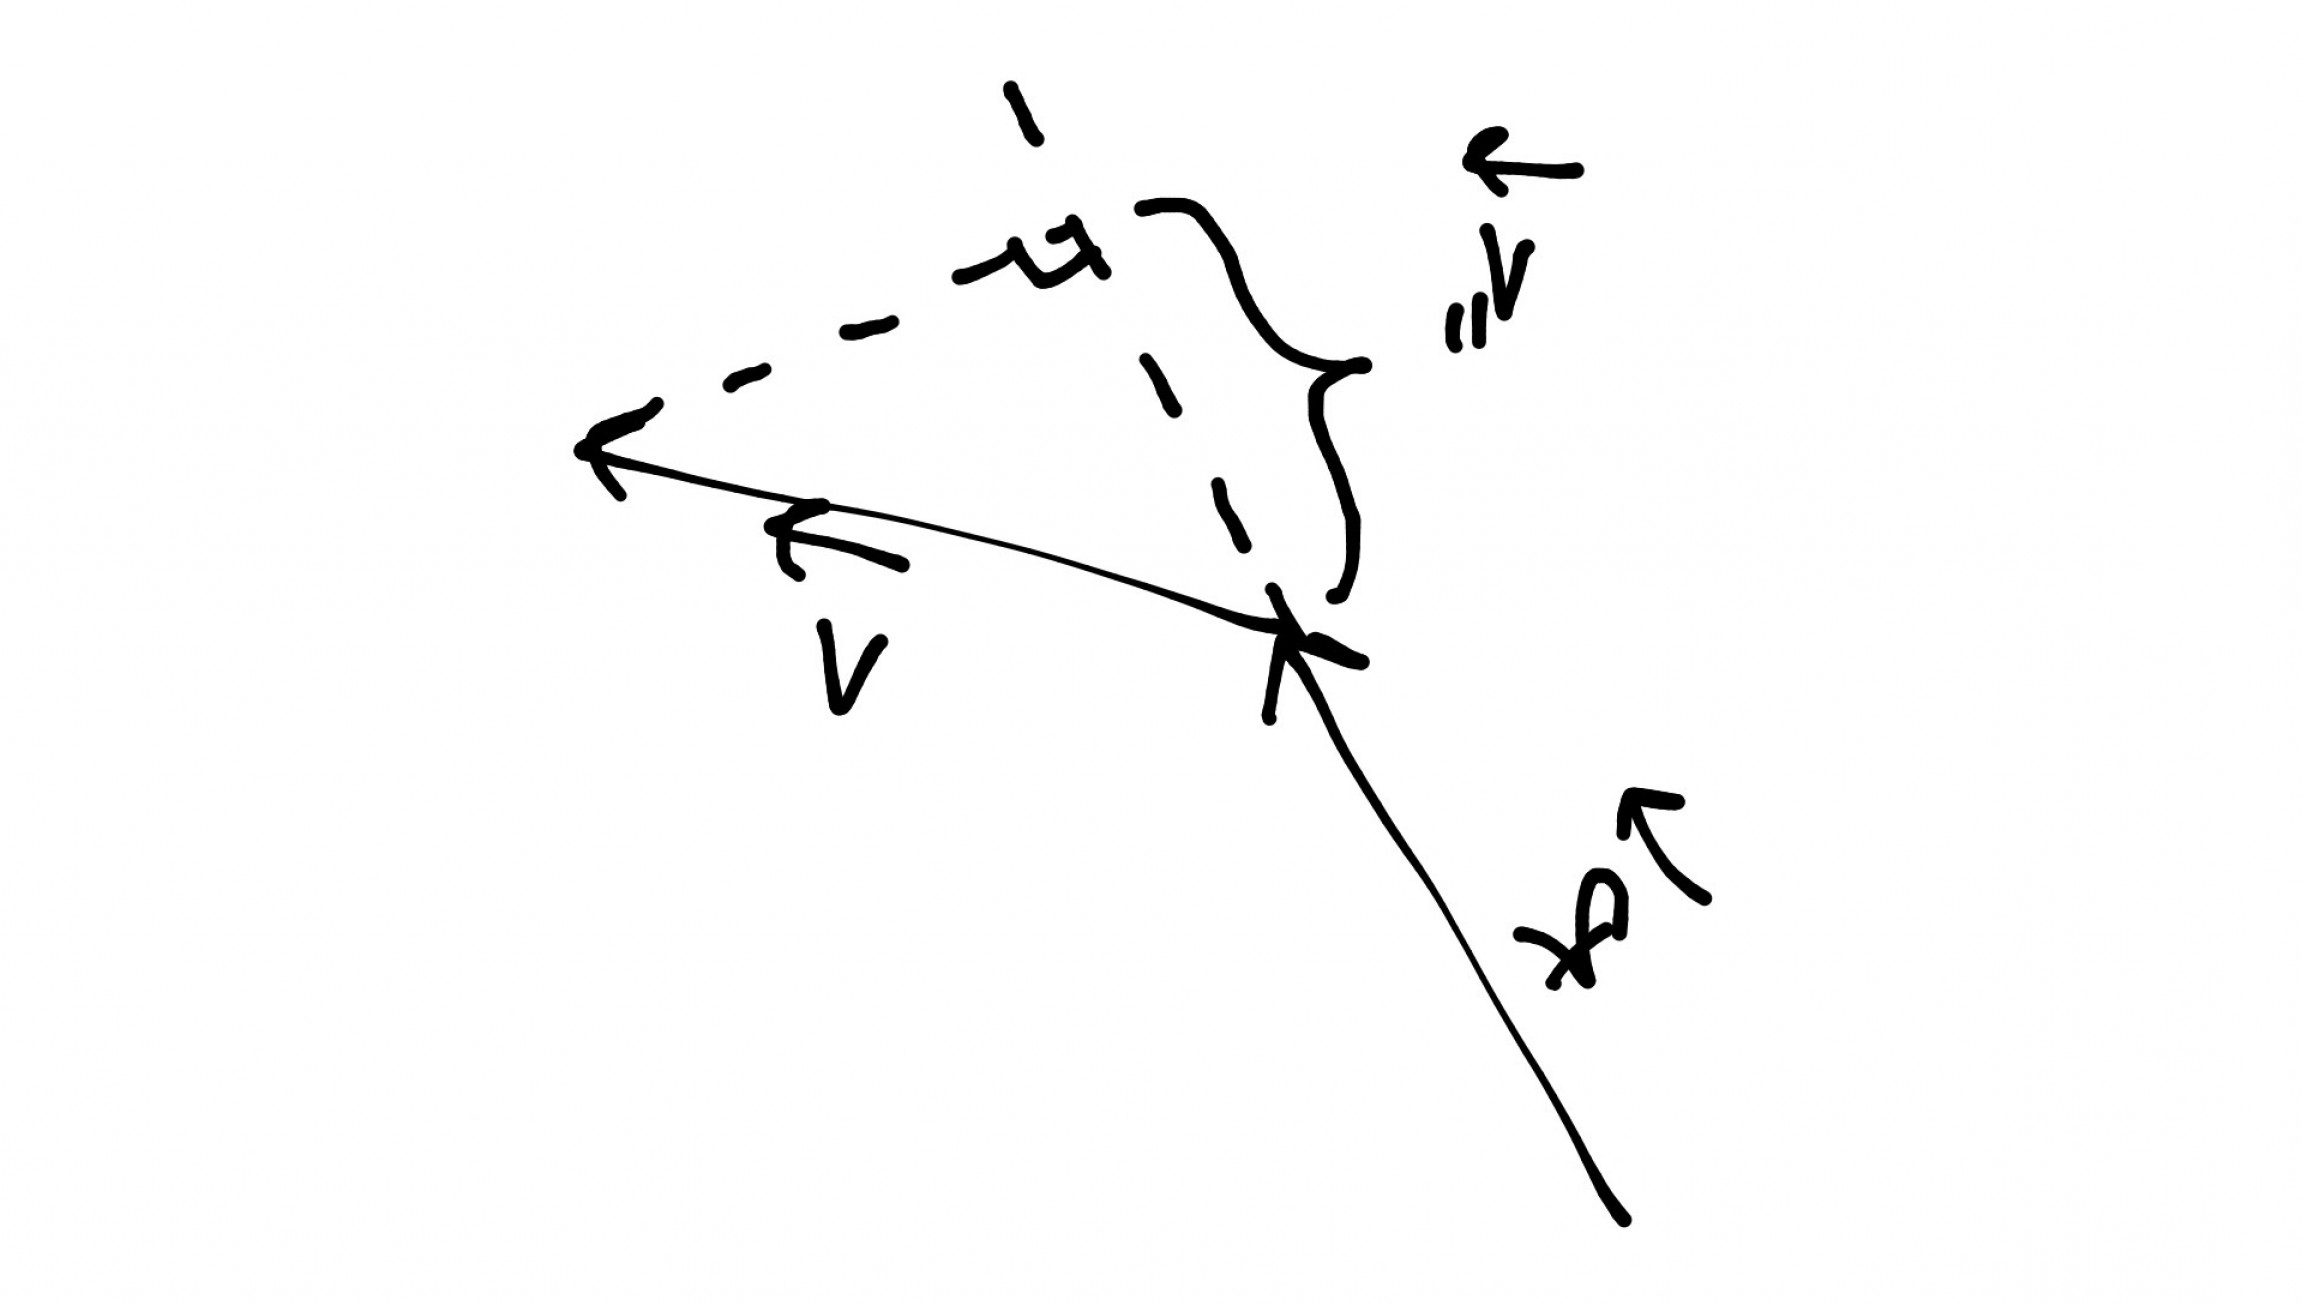 Position Vector In Physics: Why Is Parallel Component Of Velocity Along Position Vector Considered Rate Of C